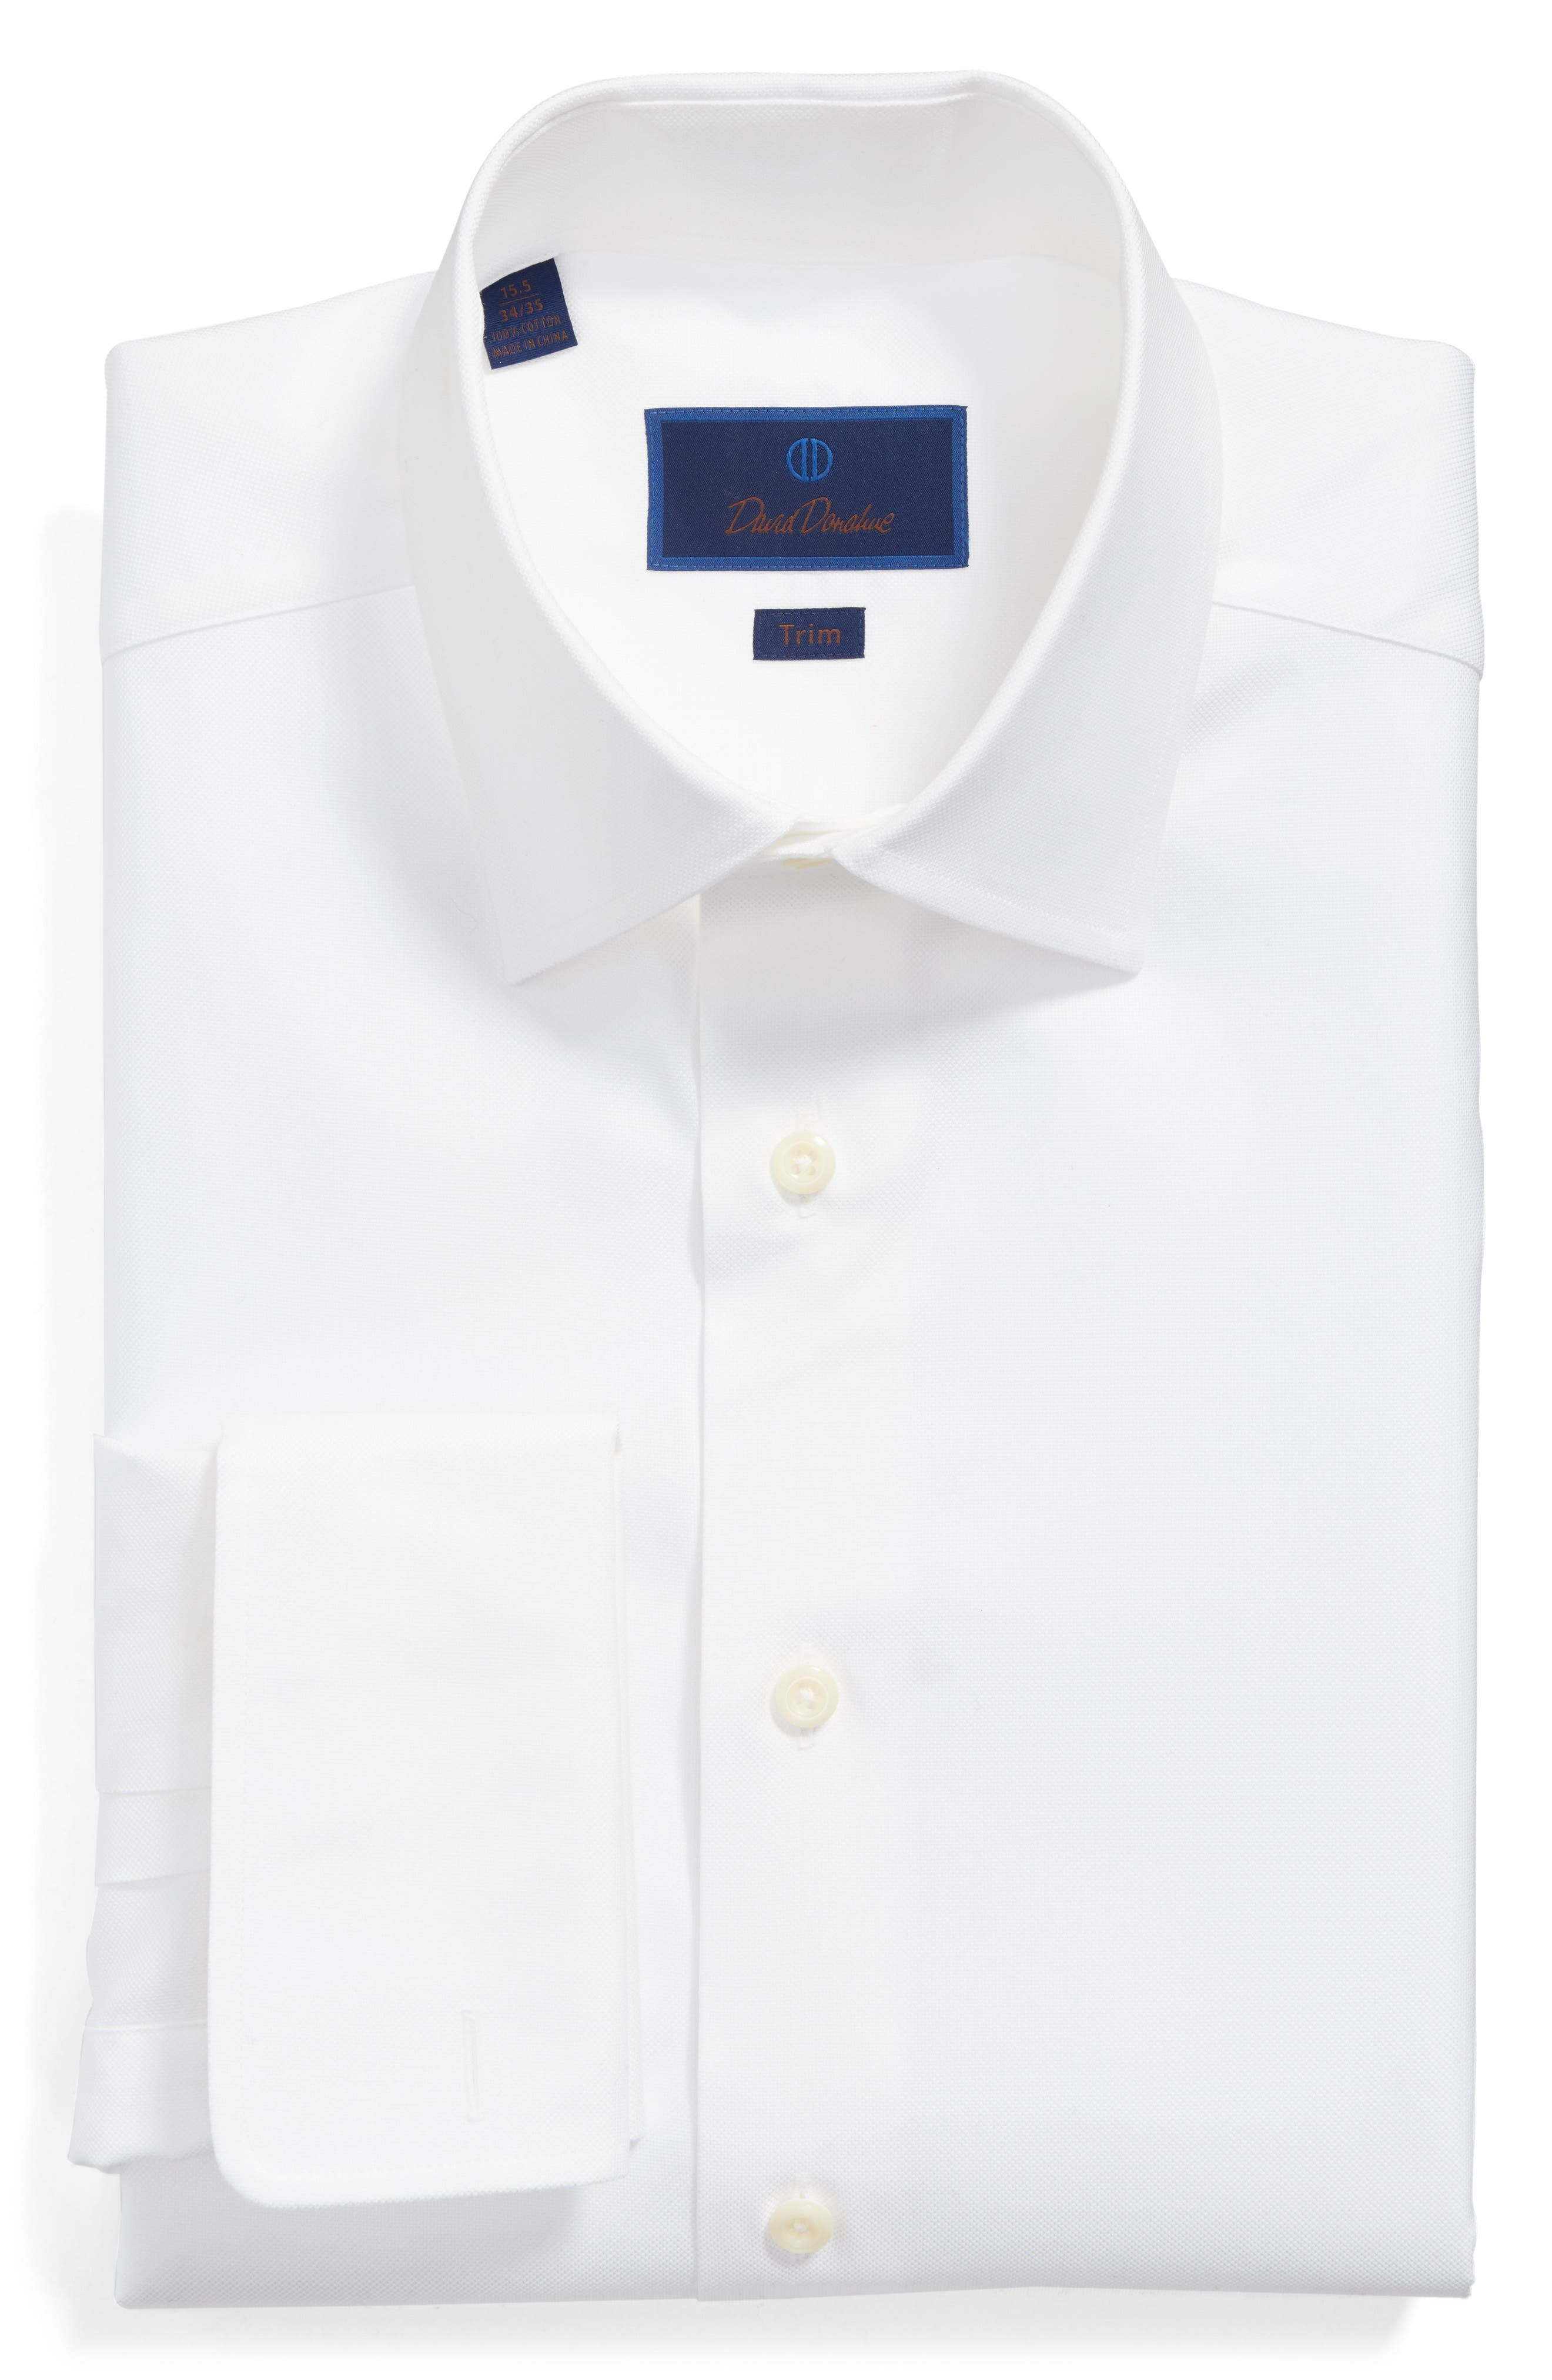 Trim Fit Solid French Cuff Dress Shirt,                         Main,                         color, White